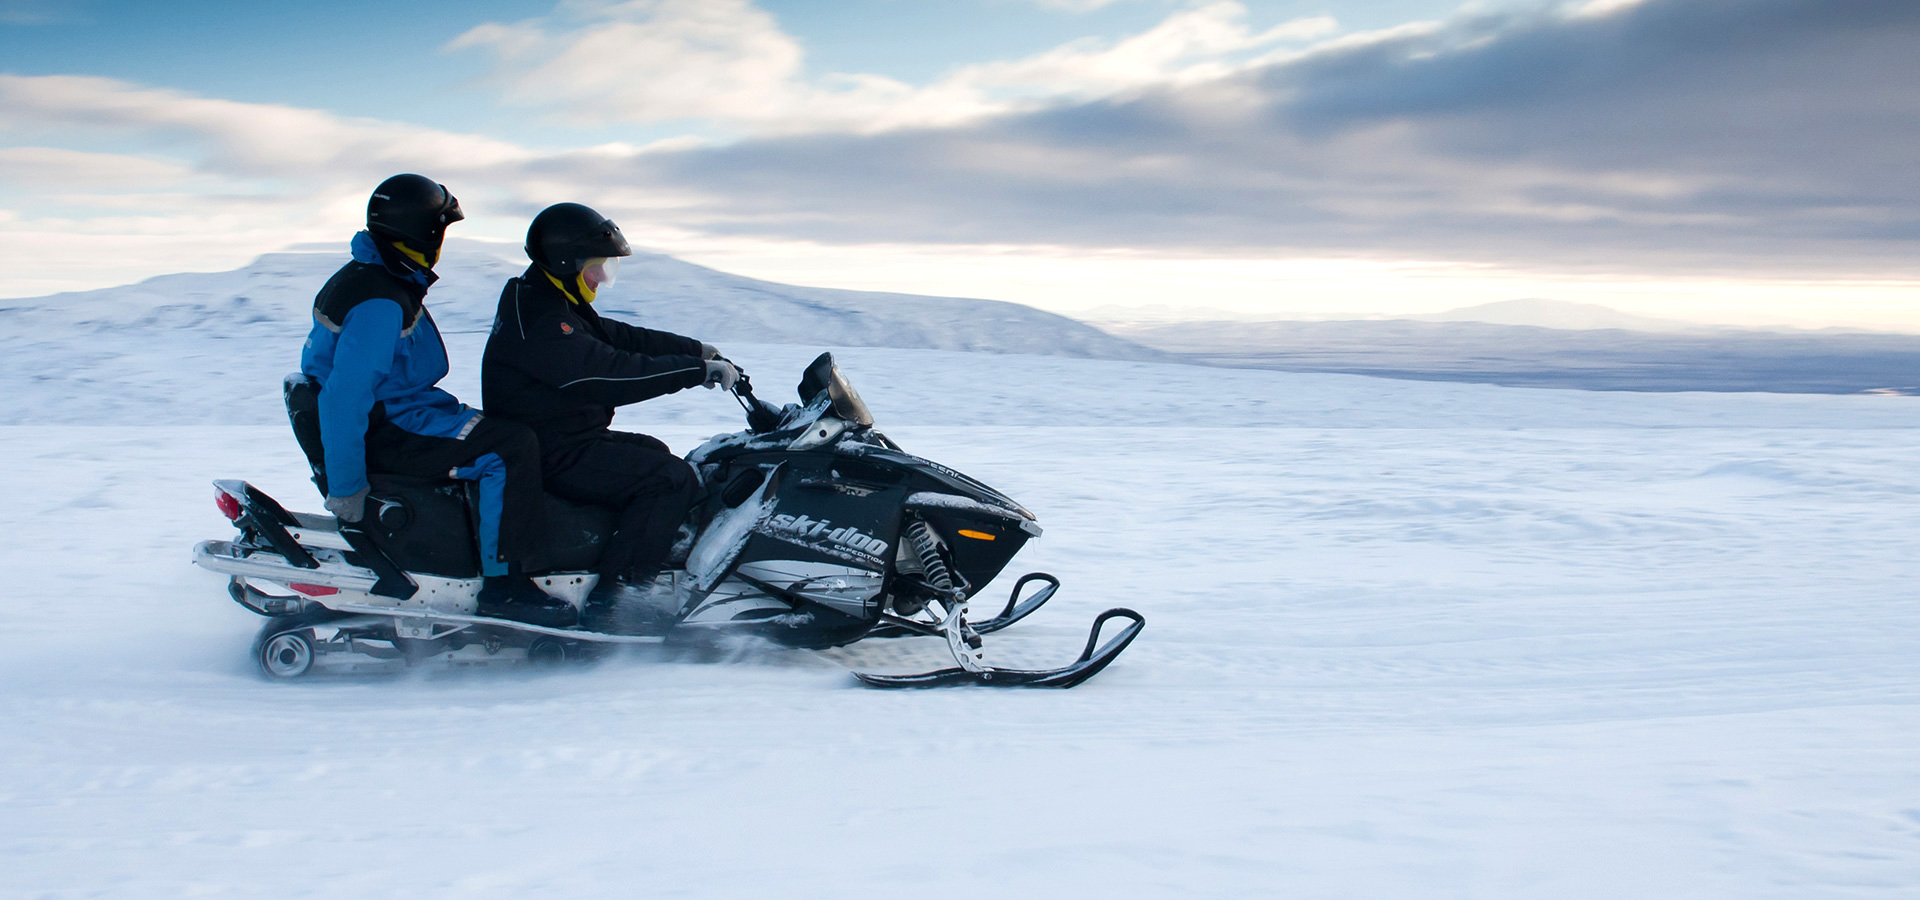 A Snowmobiling day tour provides for an action-packed afternoon in Iceland.